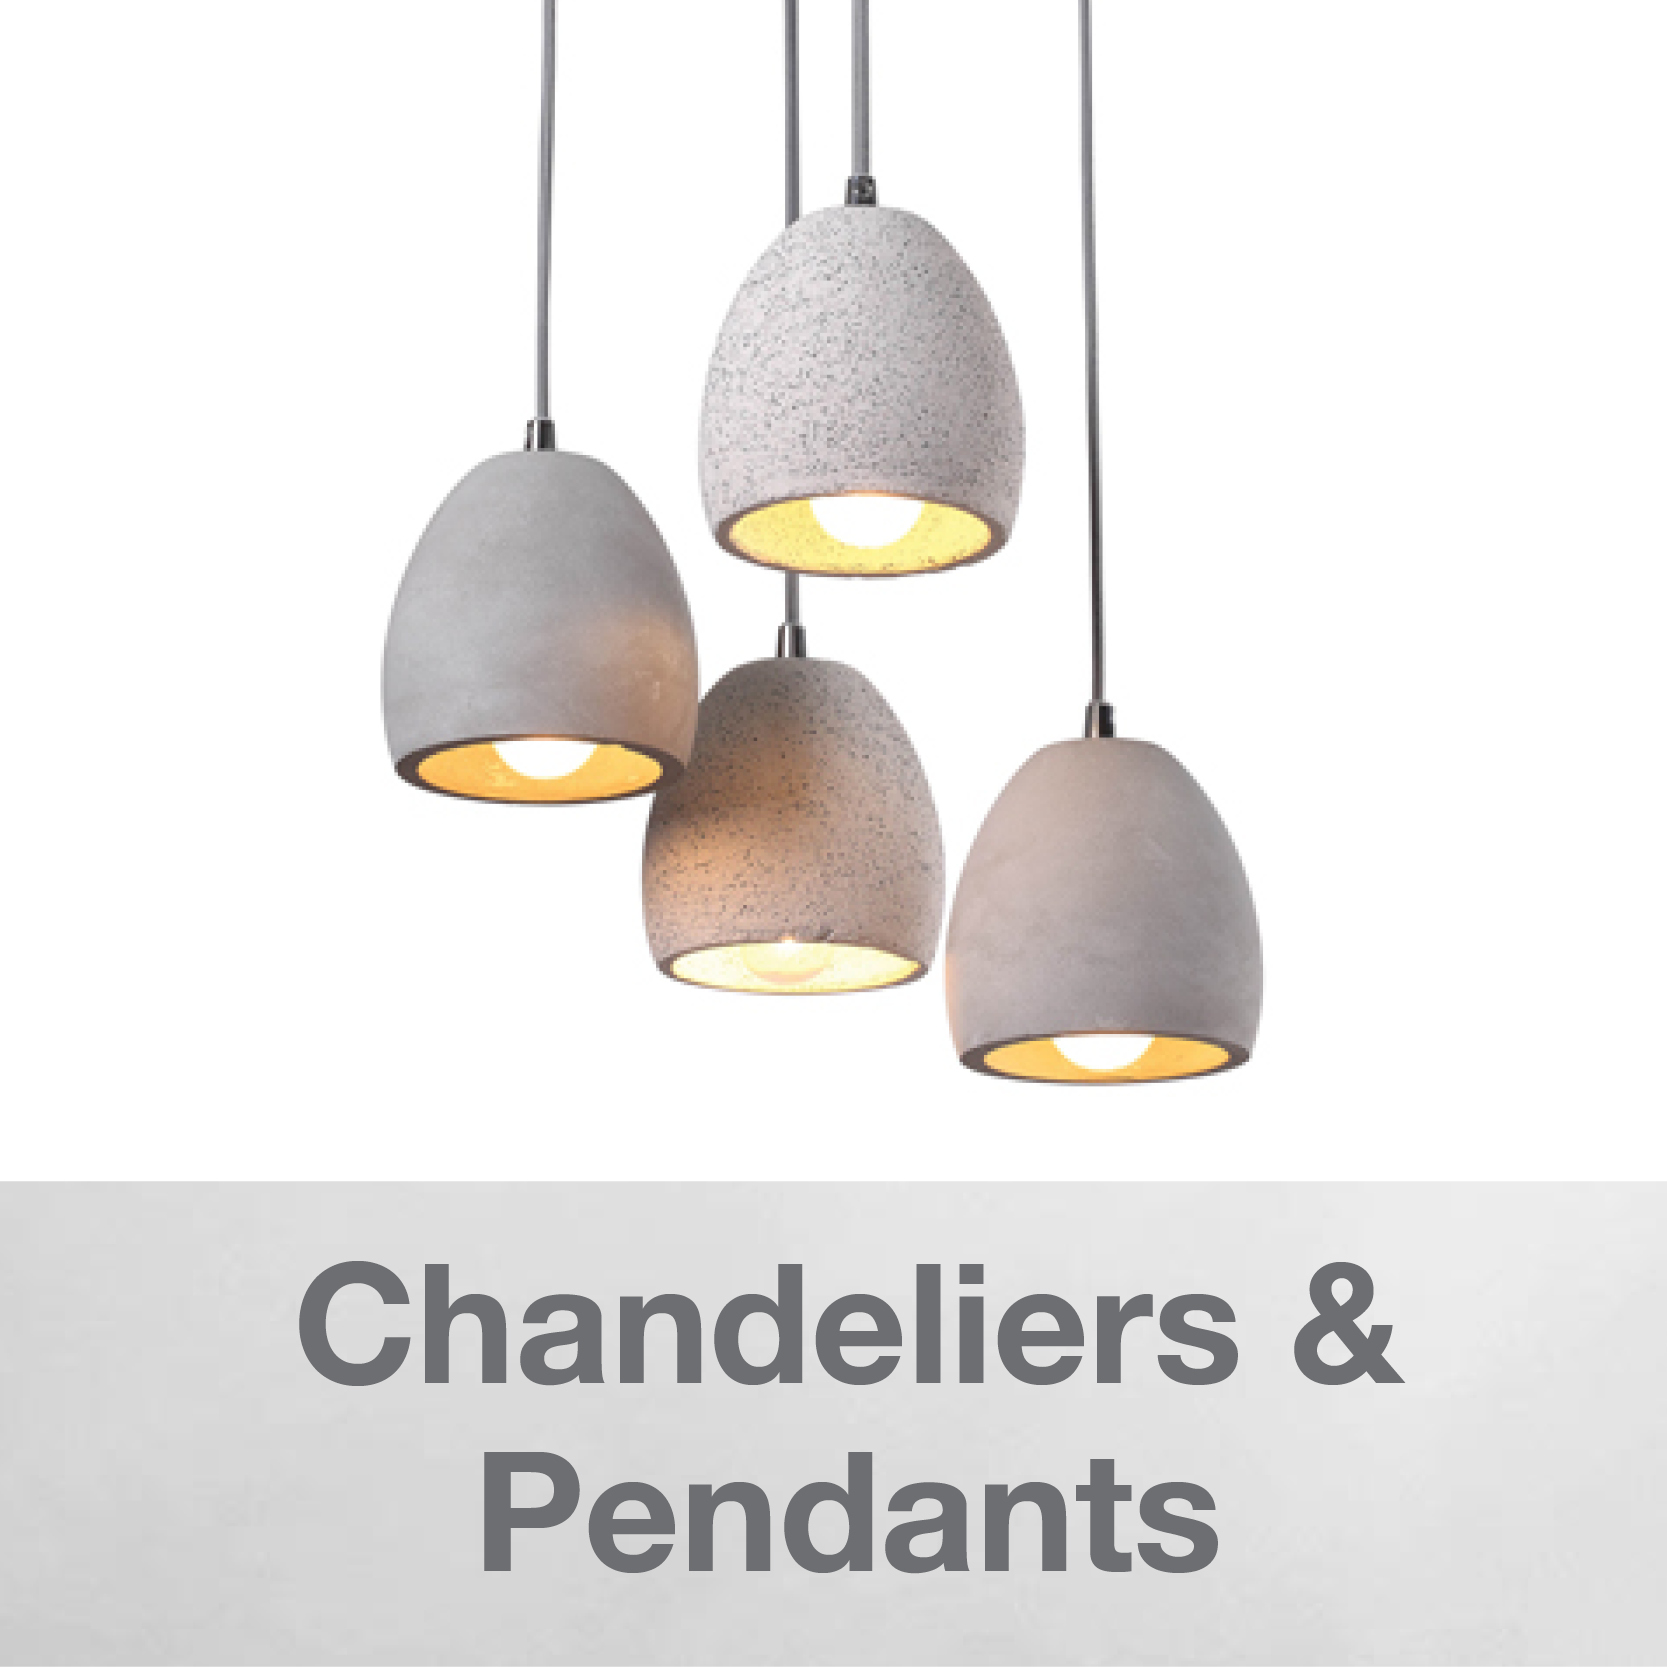 inc interiors chandeliers lighting currey by co interior designs and design firm chandelier houston fixtures commercial